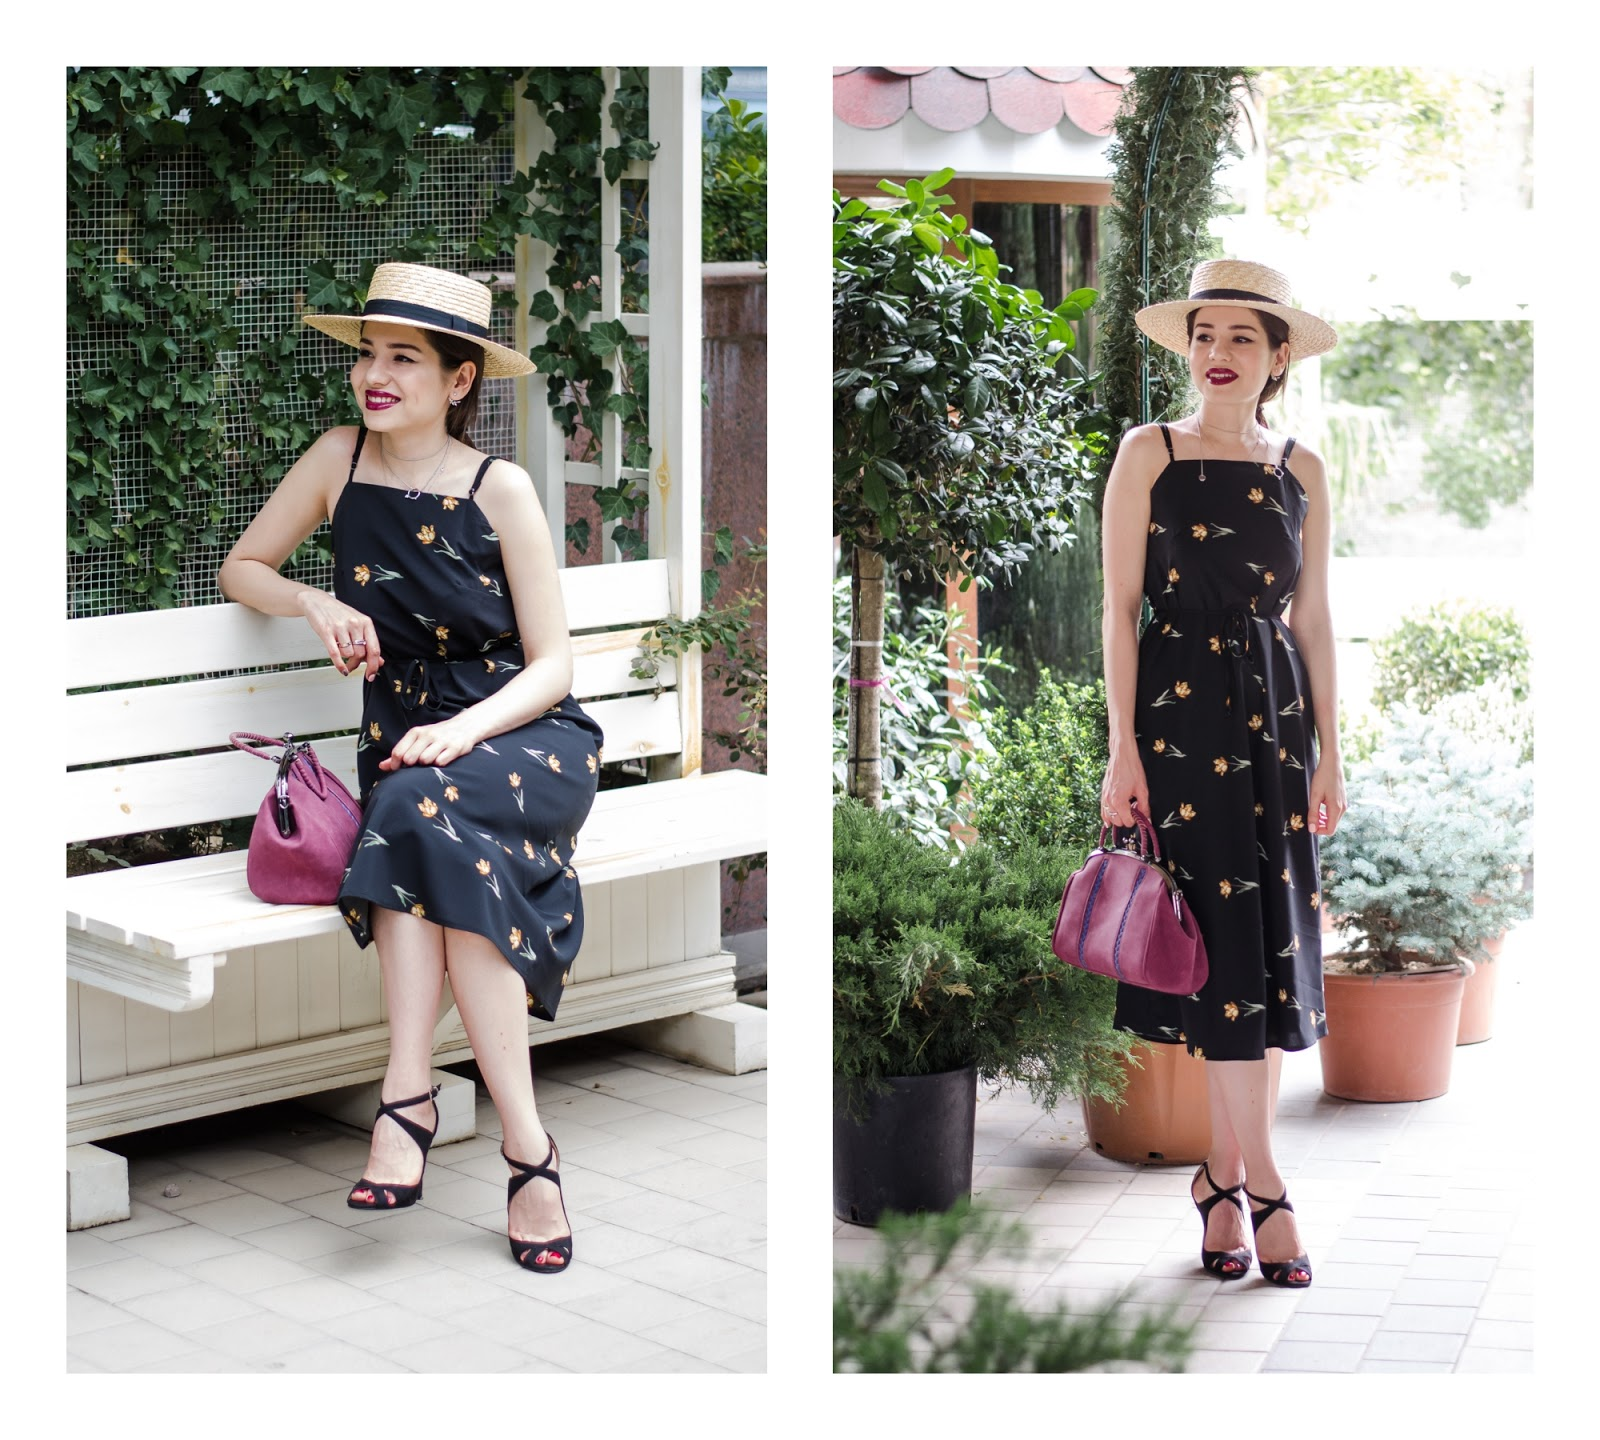 fashion blogger fashion diyorasnotes diyora beta cami dress midi dress straw hat asos heeled sandals outfit summer look 2017 lookbook street style